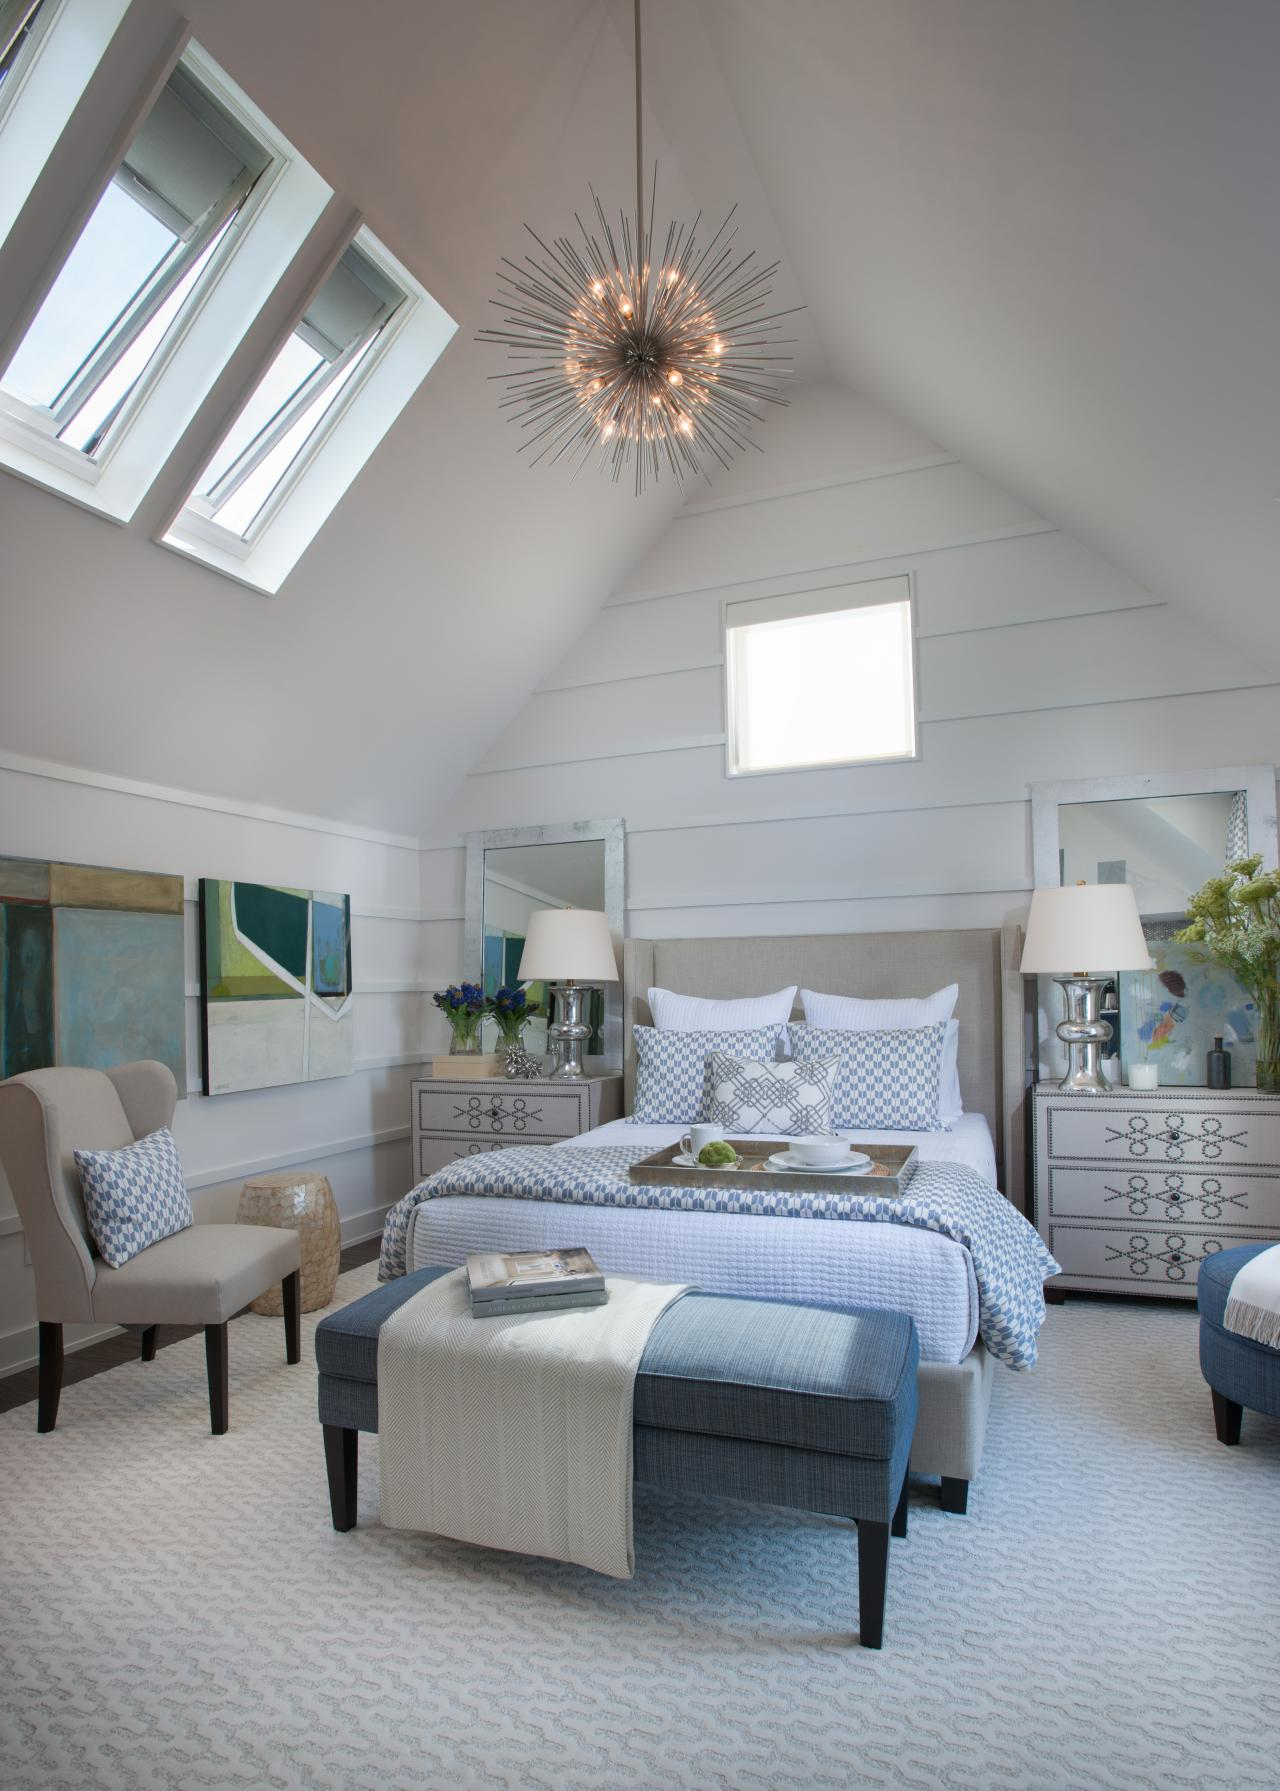 Pictures of the hgtv smart home 2015 master bedroom hgtv for Master bedroom images